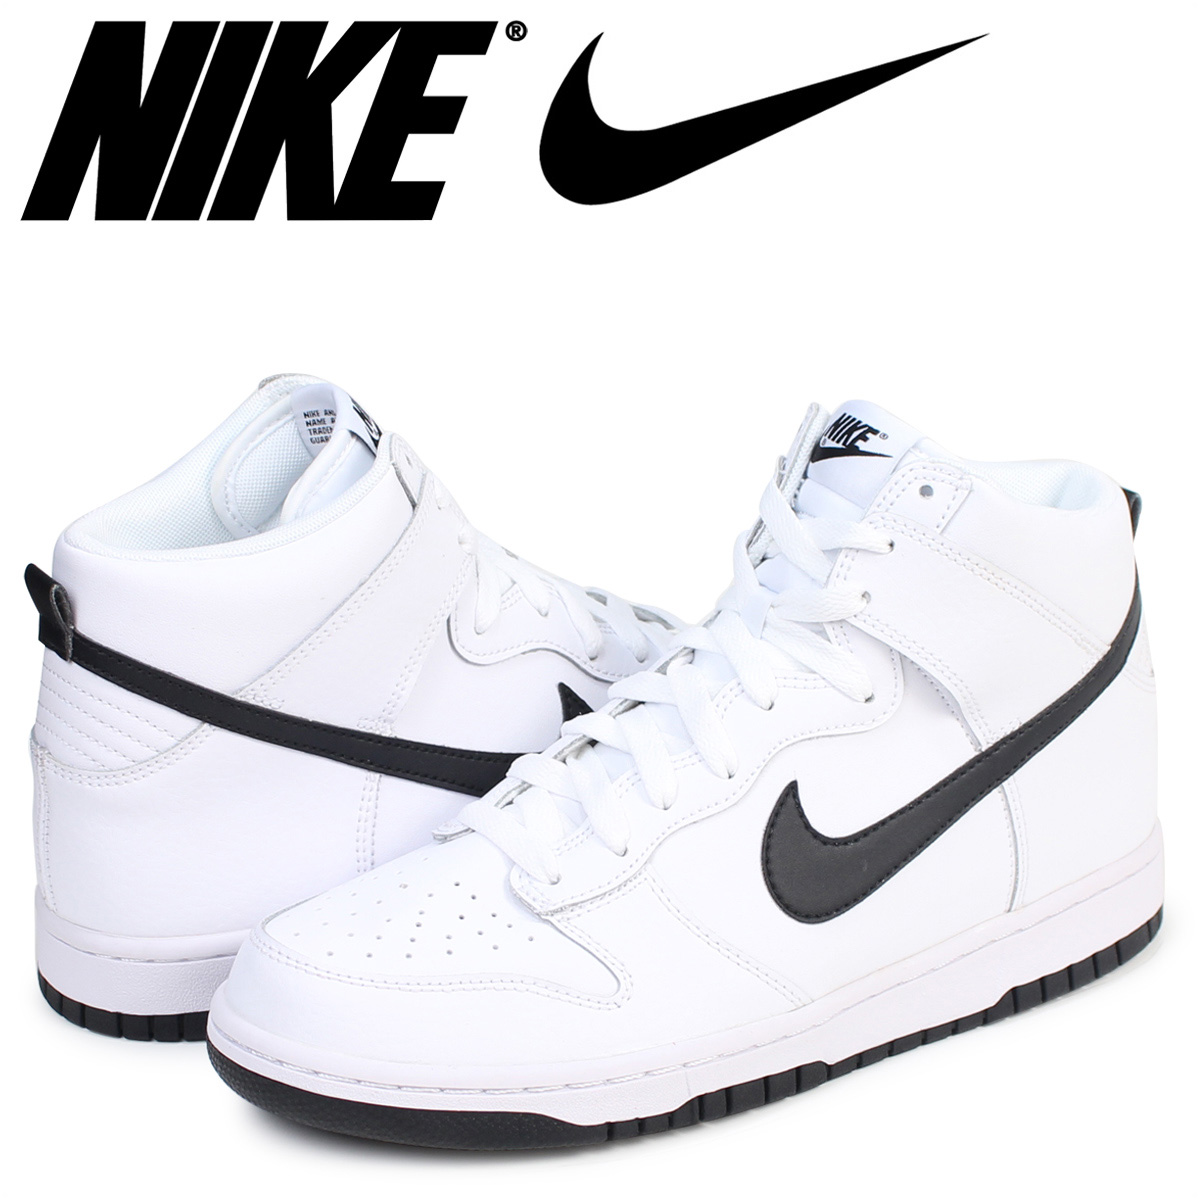 ALLSPORTS | Rakuten Global Market: NIKE Nike dunk high sneakers DUNK HI men  904,233-103 shoes white [7/1 Shinnyu load] [176]